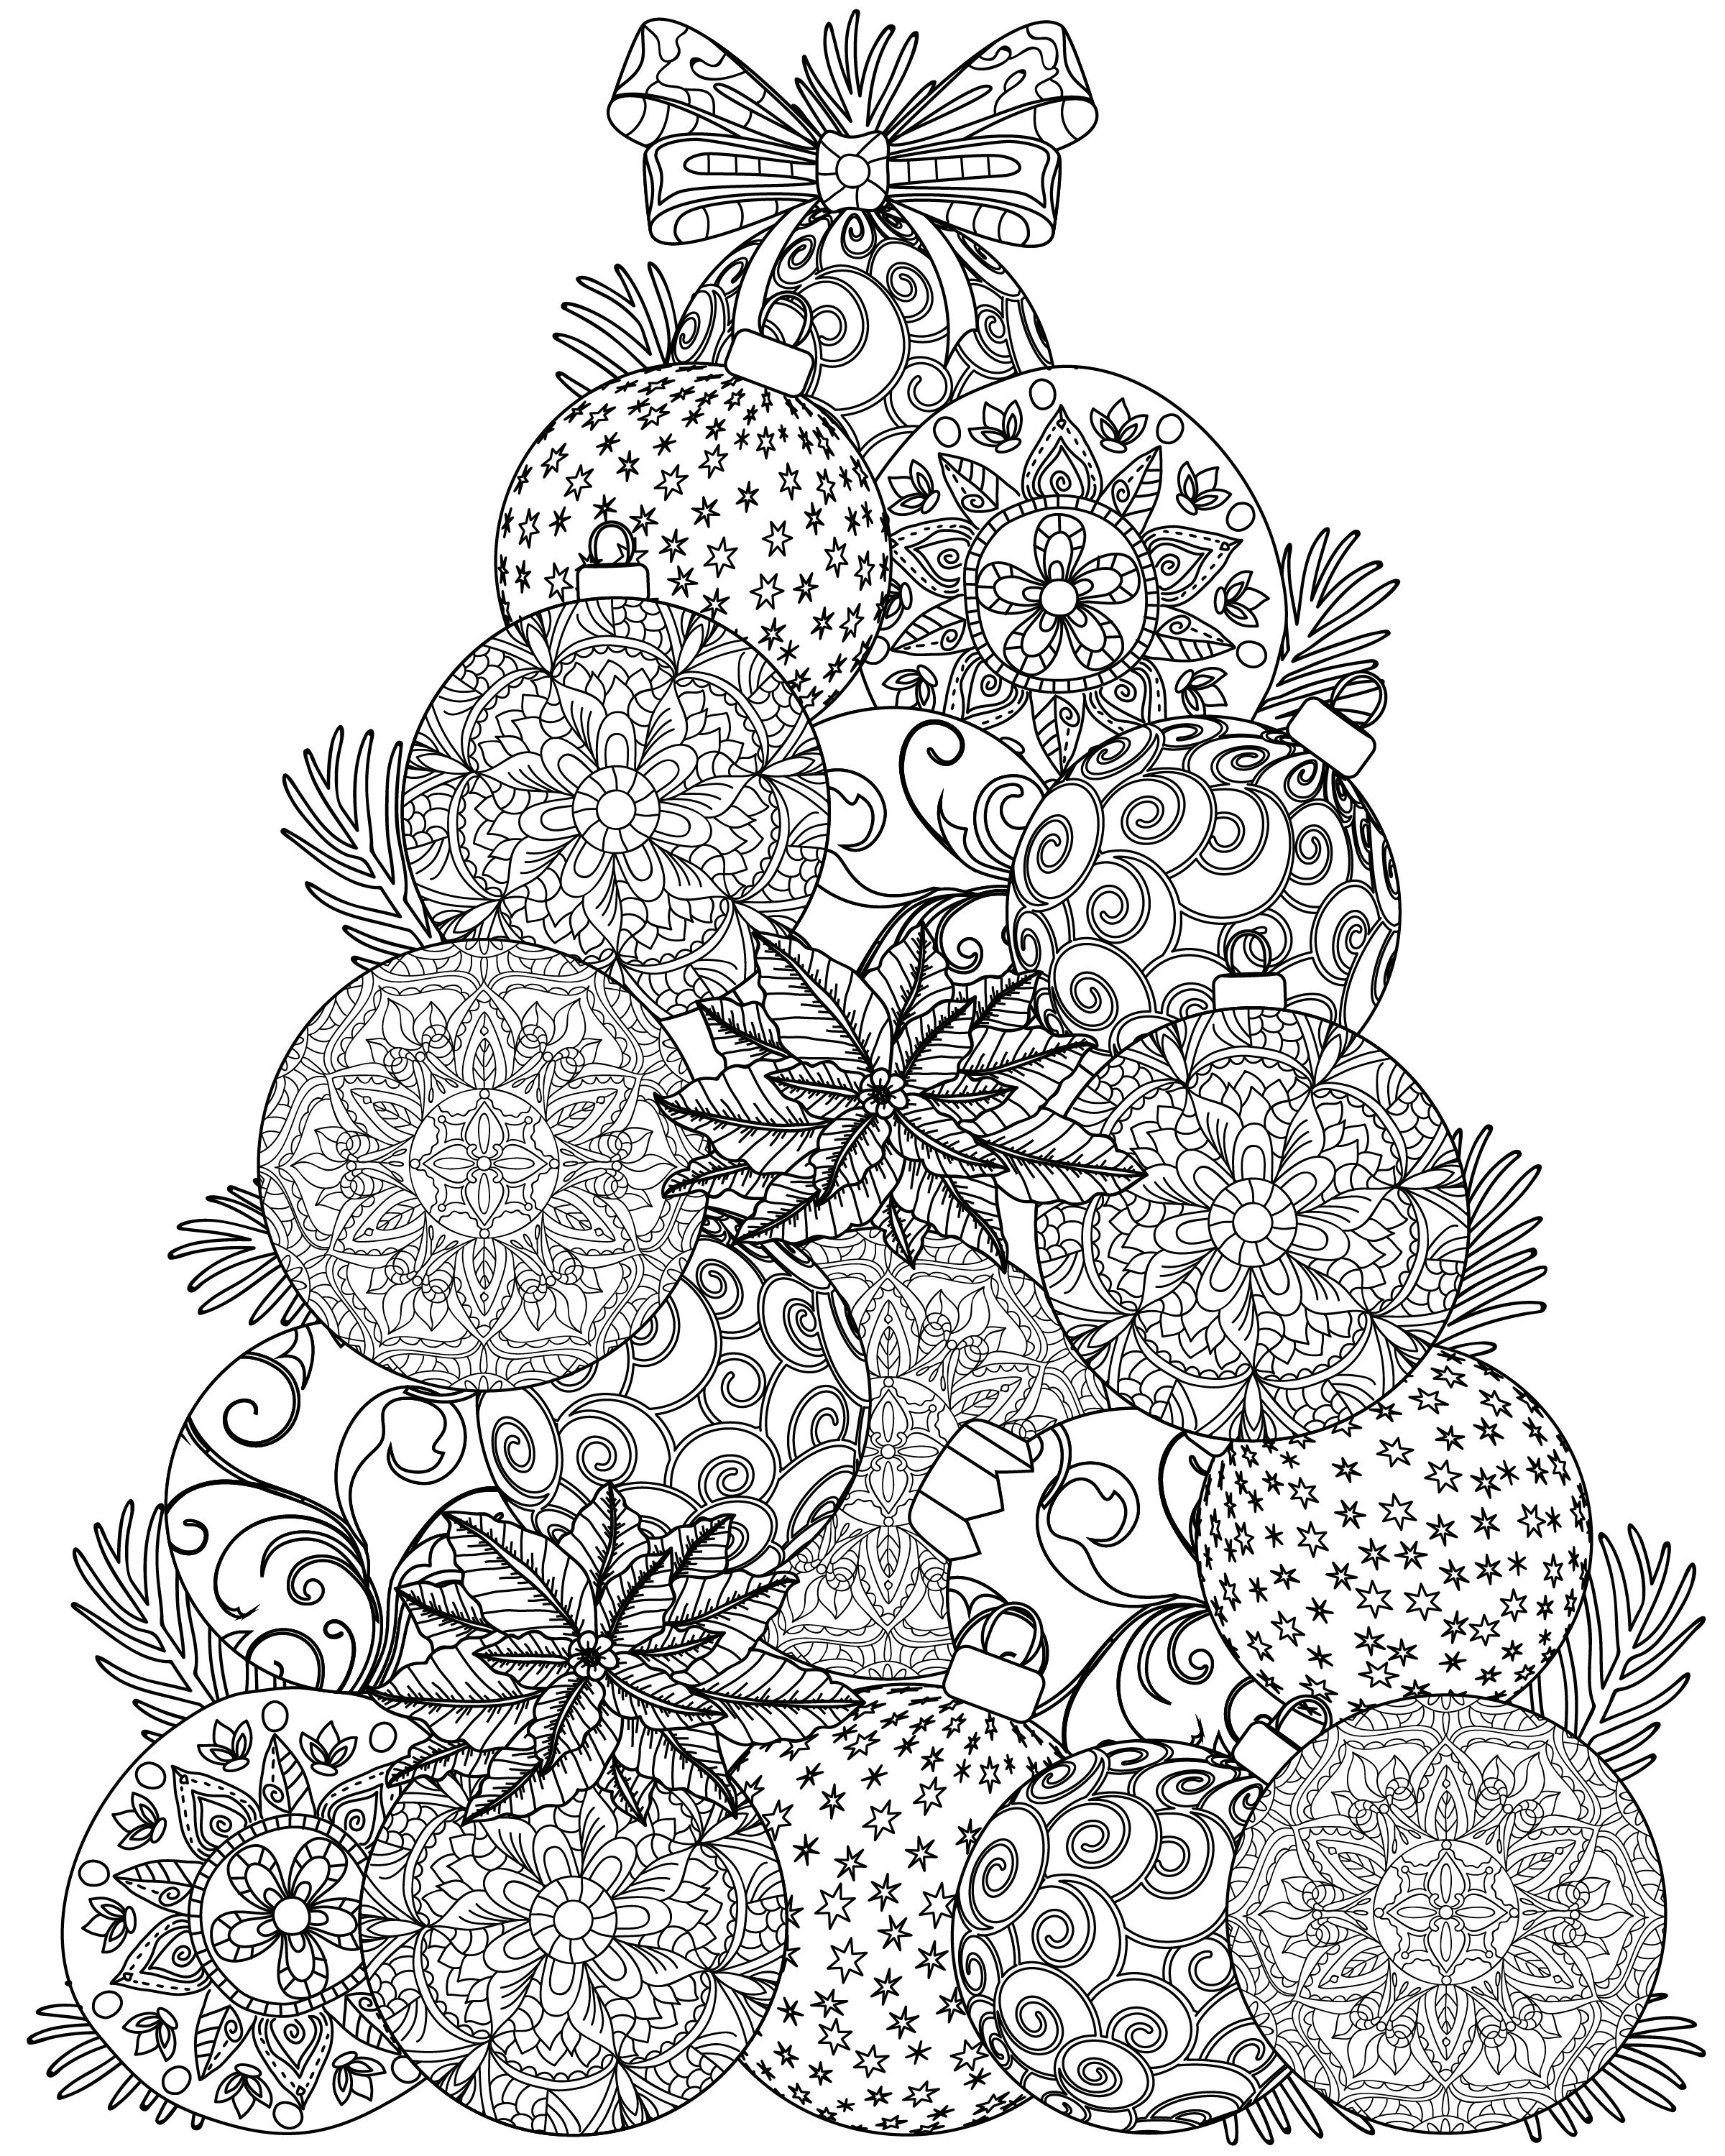 let's get coloring girls!   coloring pages   pinterest   coloring